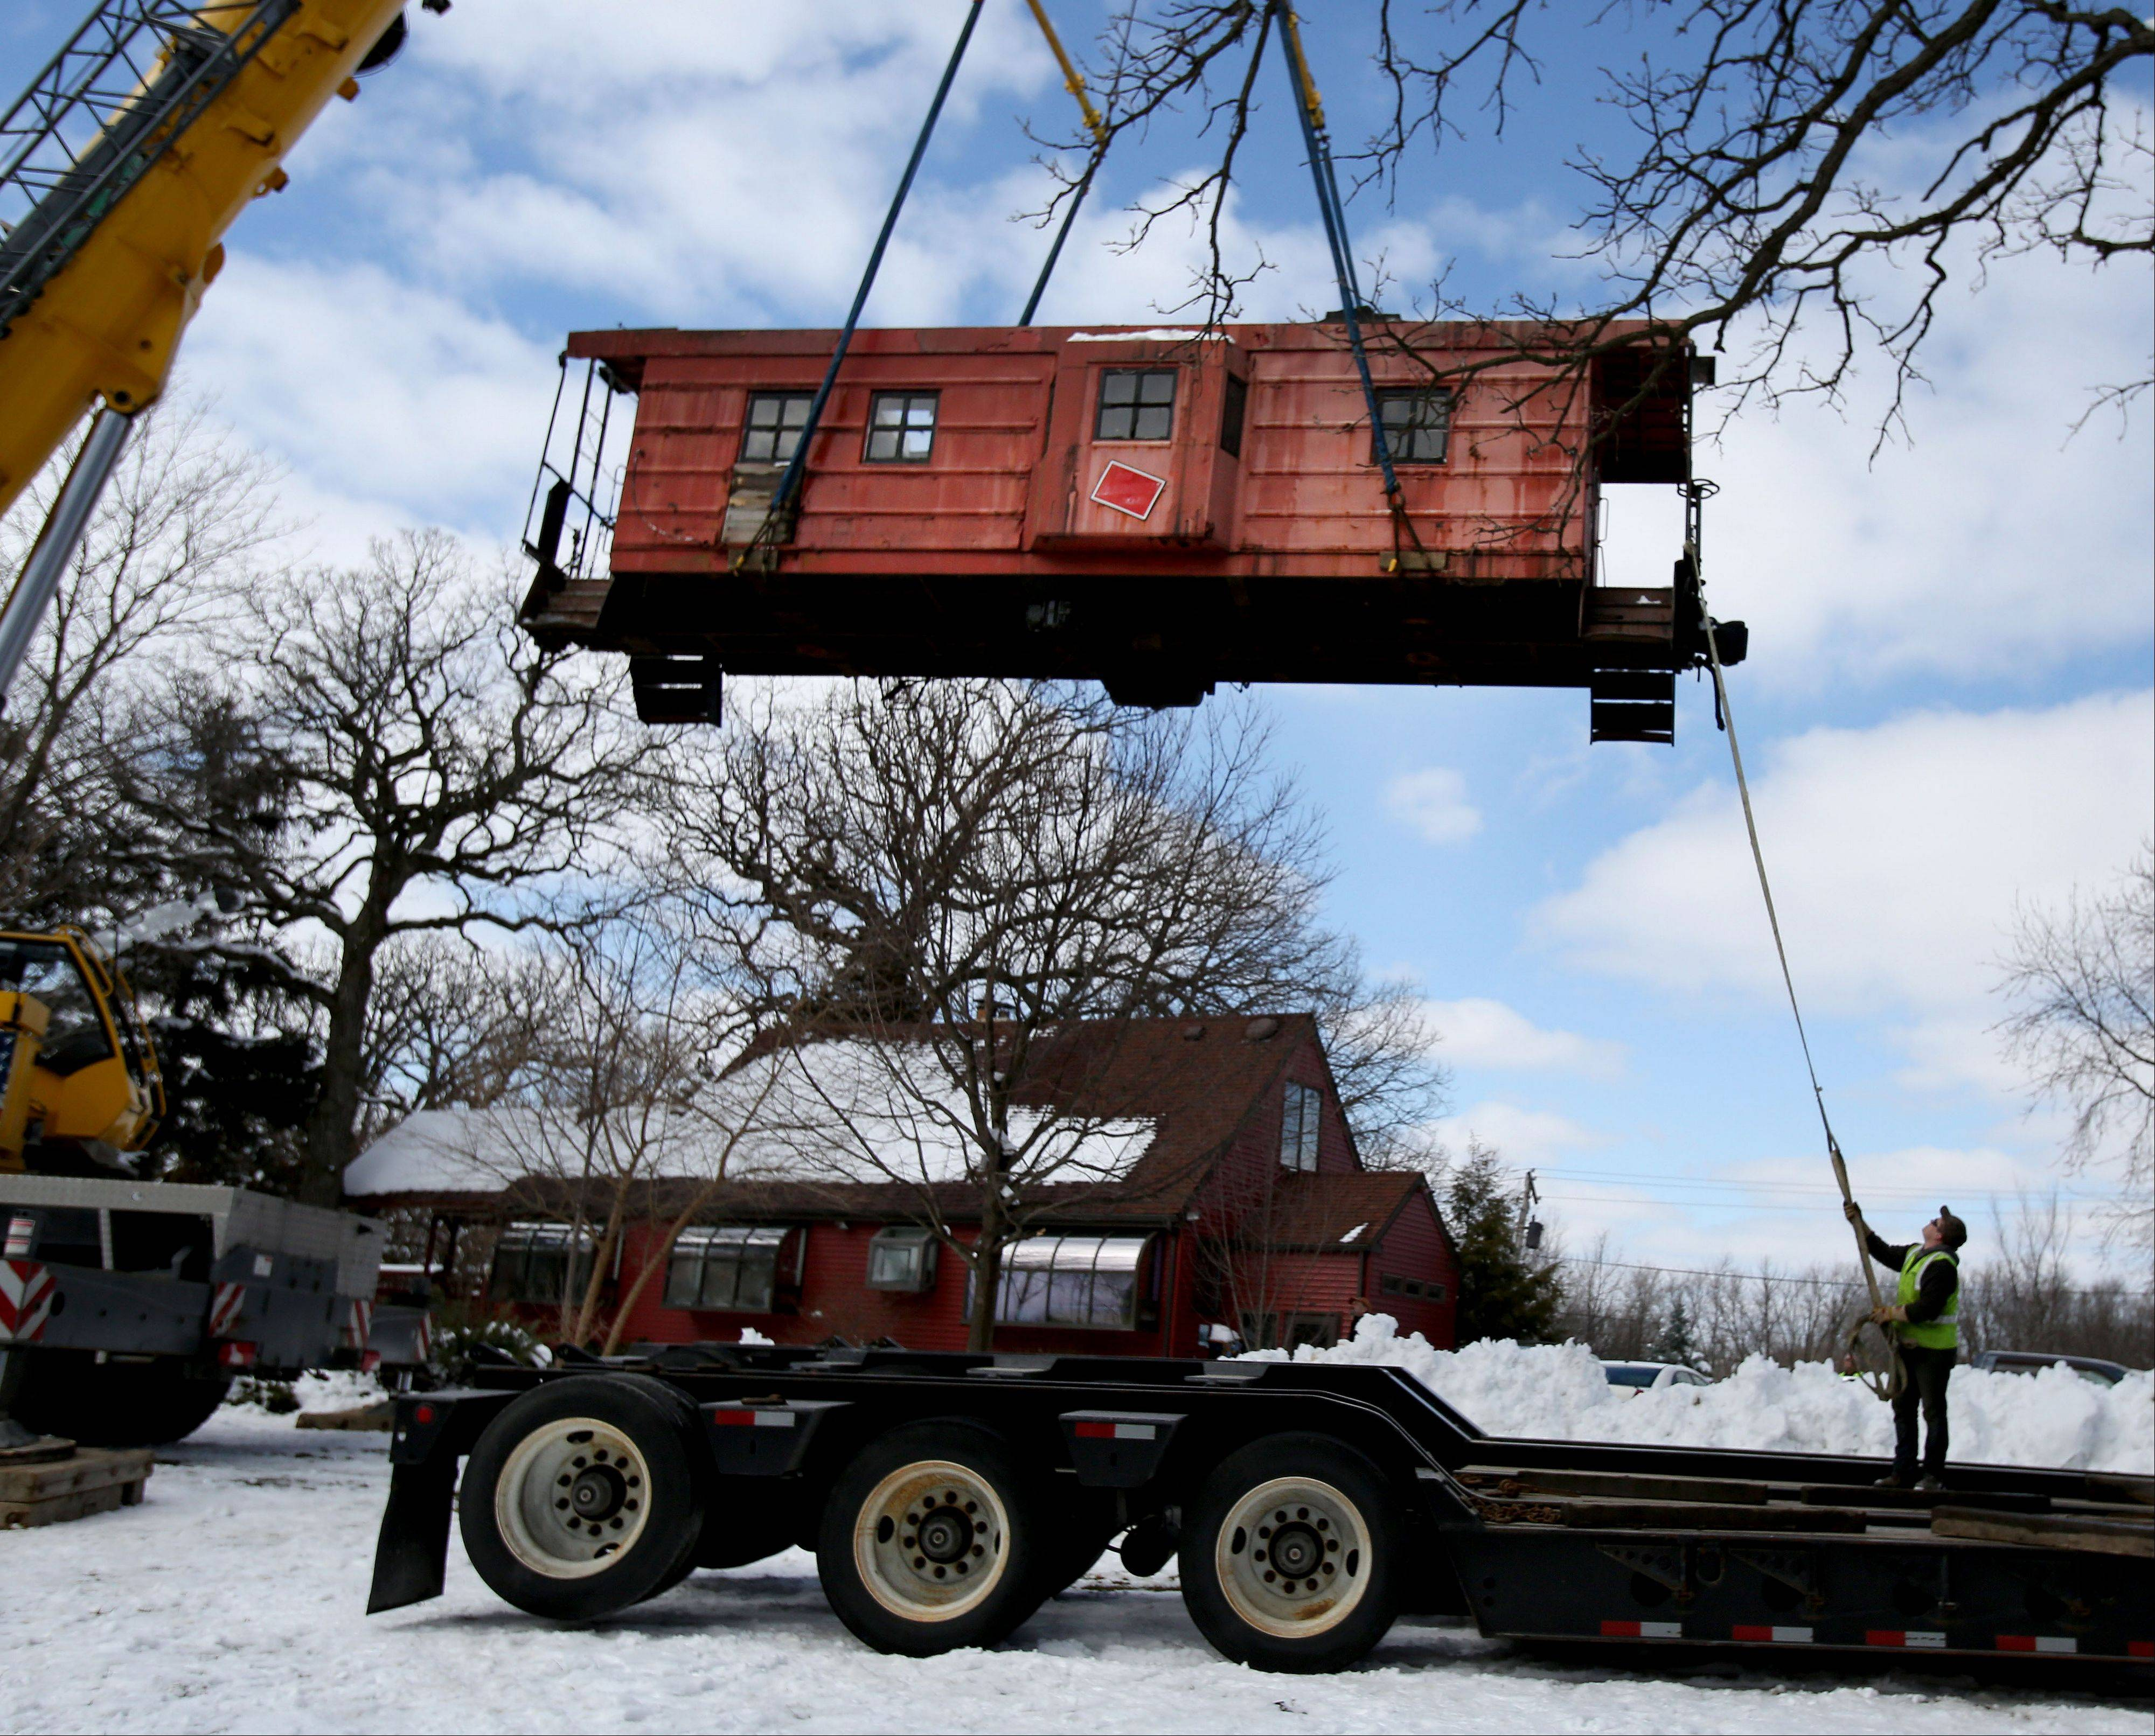 Milwaukee Road caboose finds new home in Itasca park